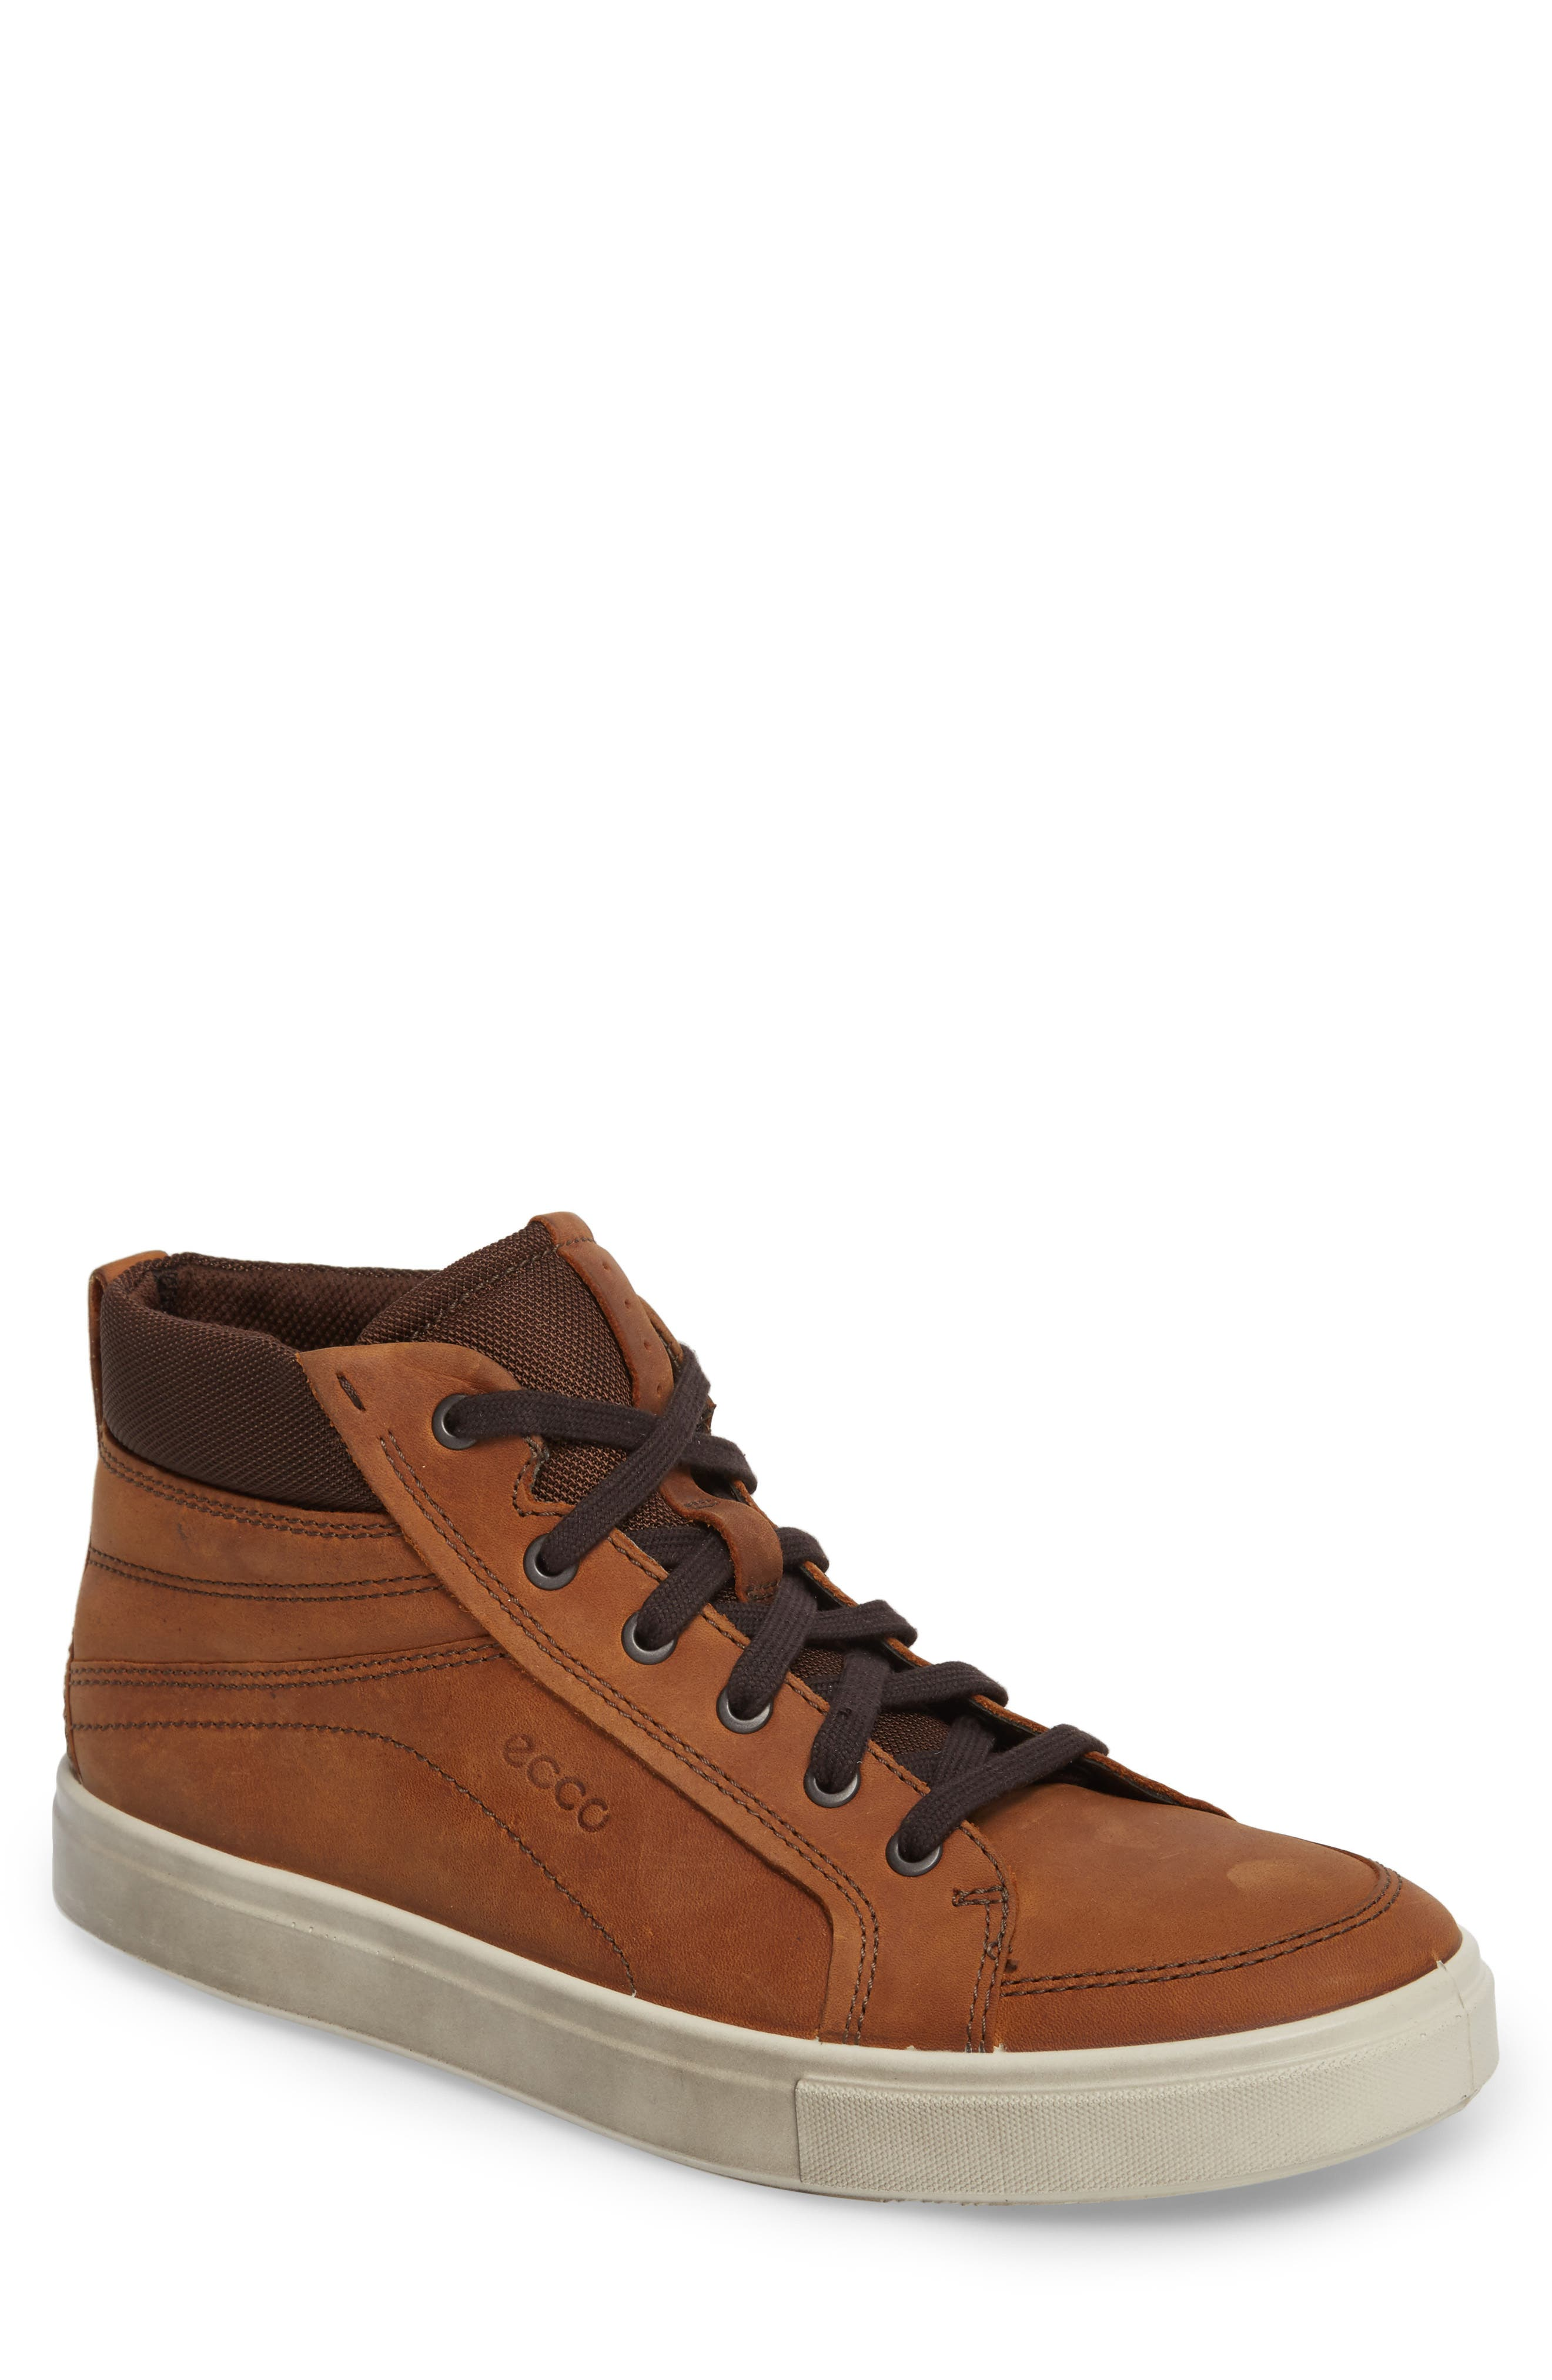 Kyle Sneaker,                         Main,                         color, Amber Leather